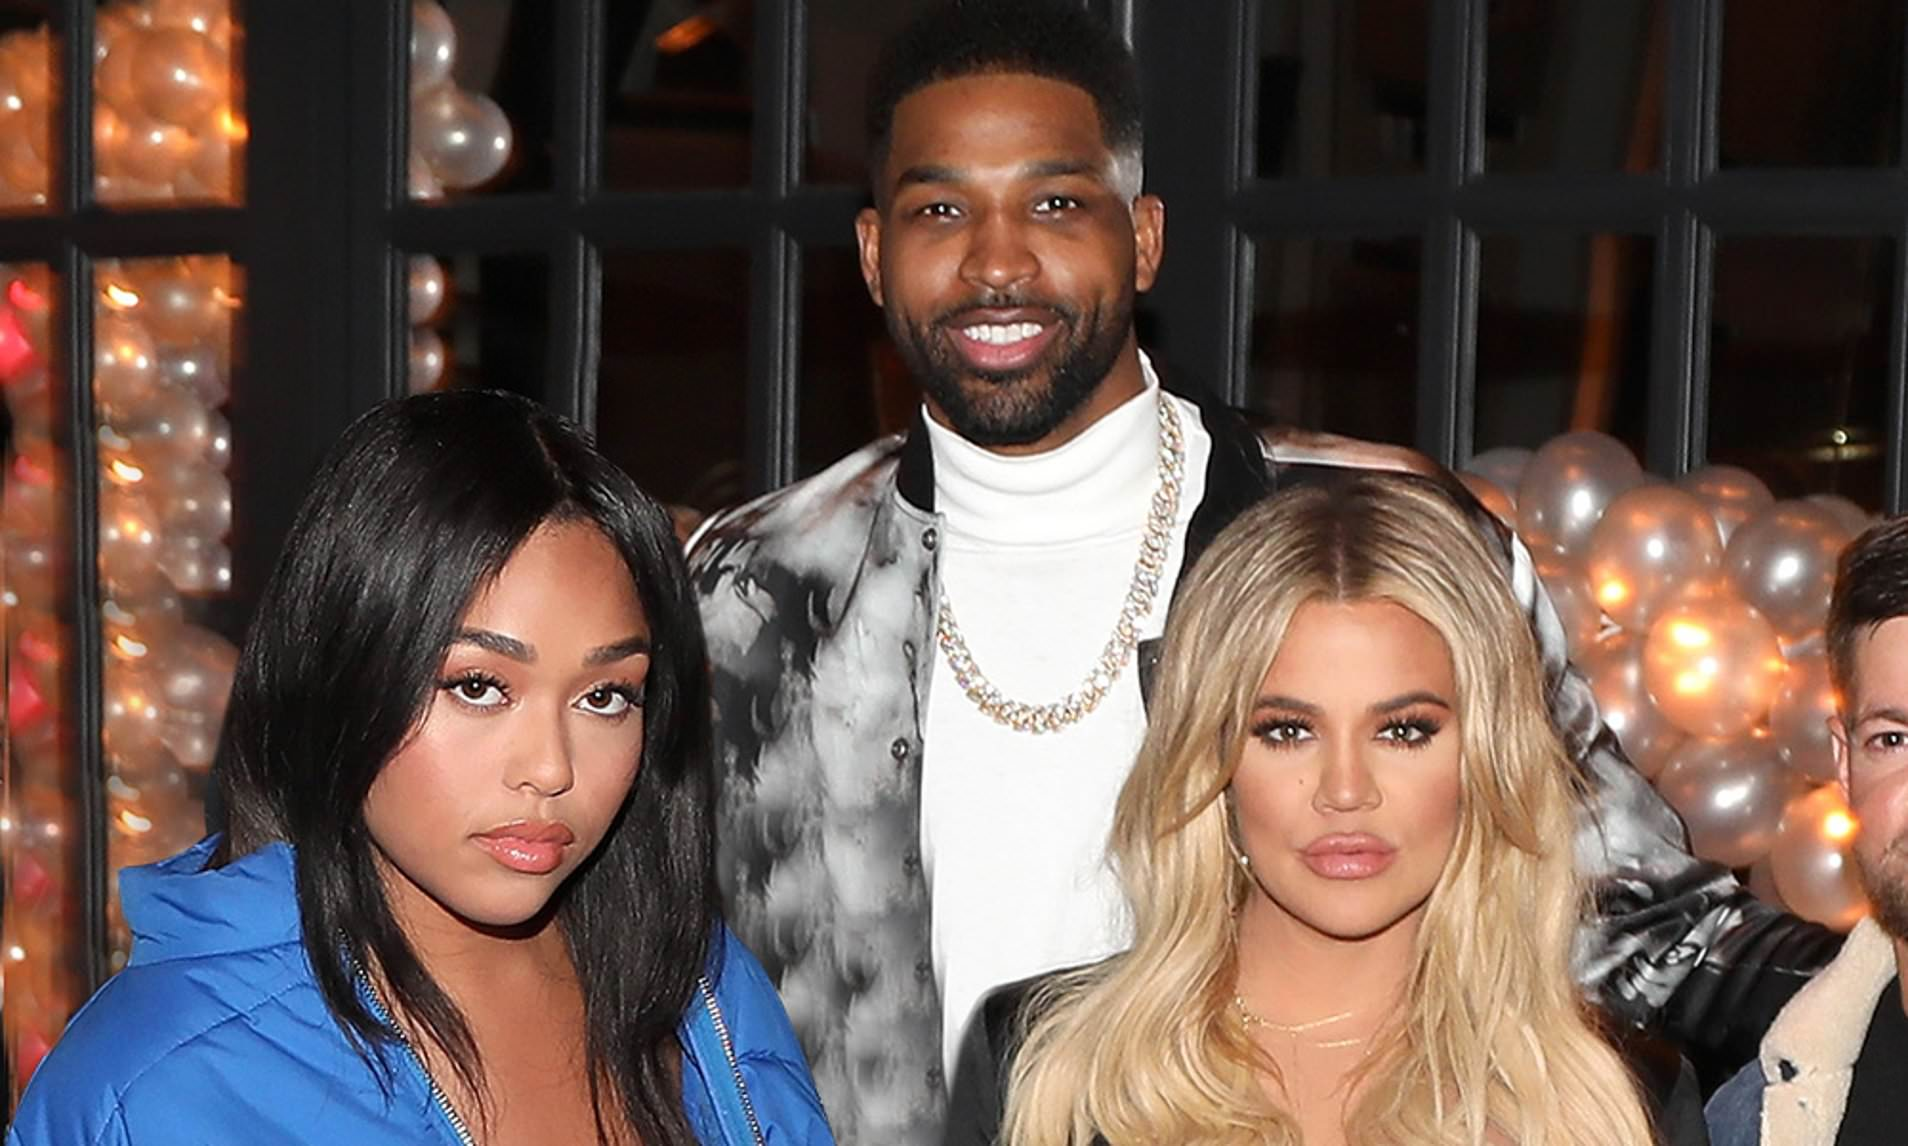 khloe-kardashian-and-tristan-thompson-have-trouble-watching-the-jordyn-woods-related-drama-on-the-new-kuwk-season